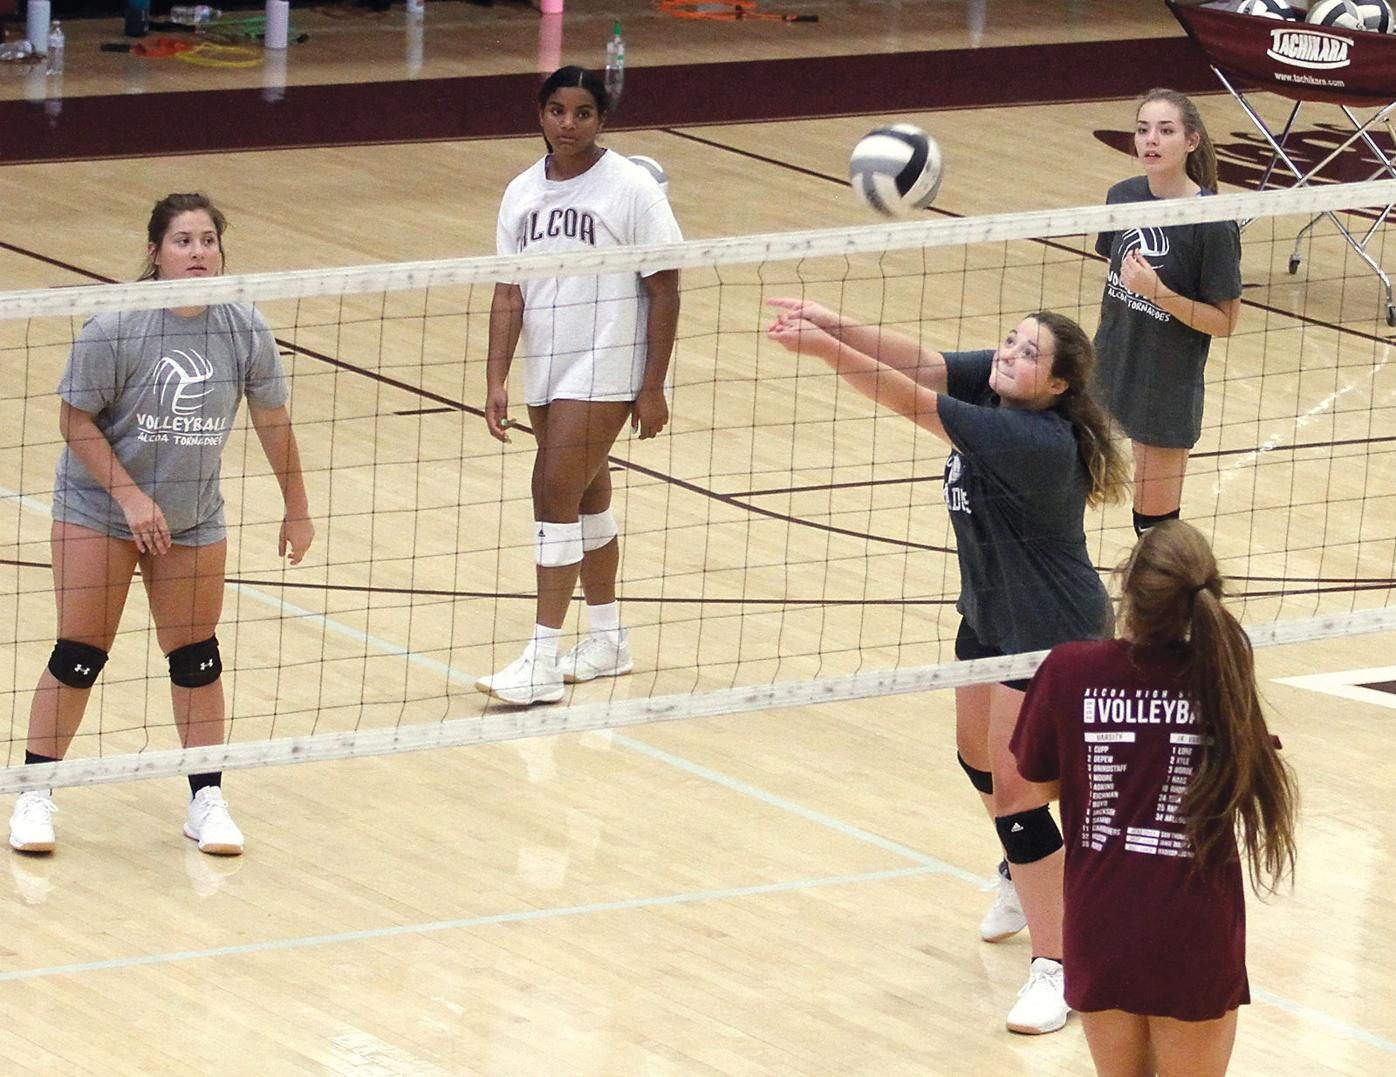 The Alcoa girls volleyball team held it's first practice Monday